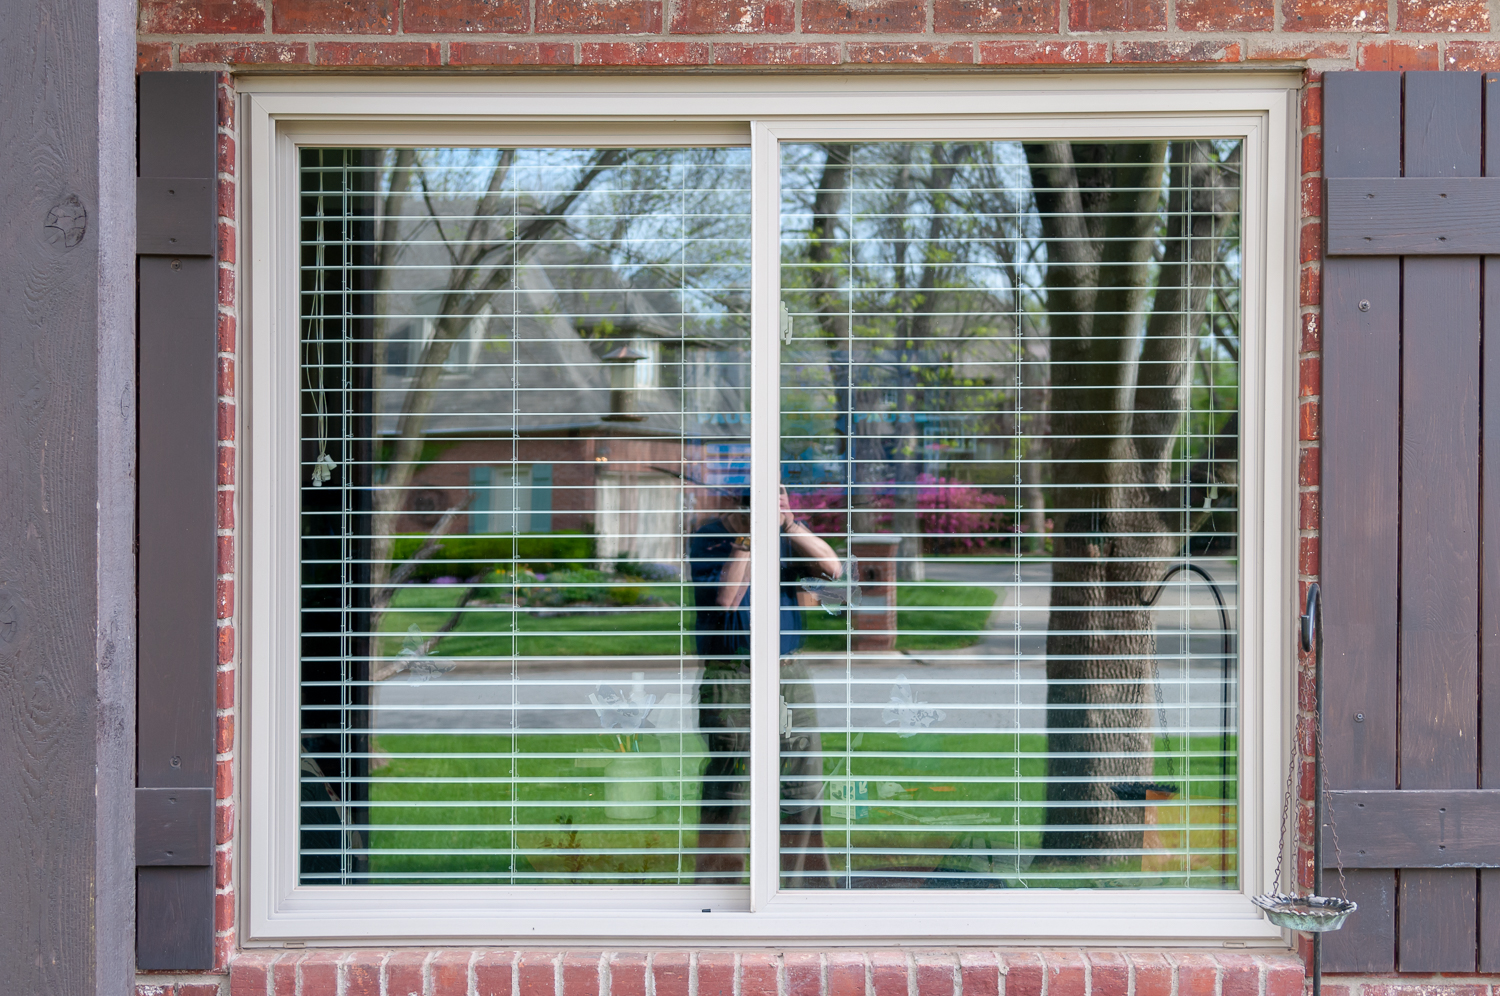 Here is the window we installed. It easily slides right or left, and the blinds can be raised for easy viewing. We do have window decals to help prevent bird strikes.